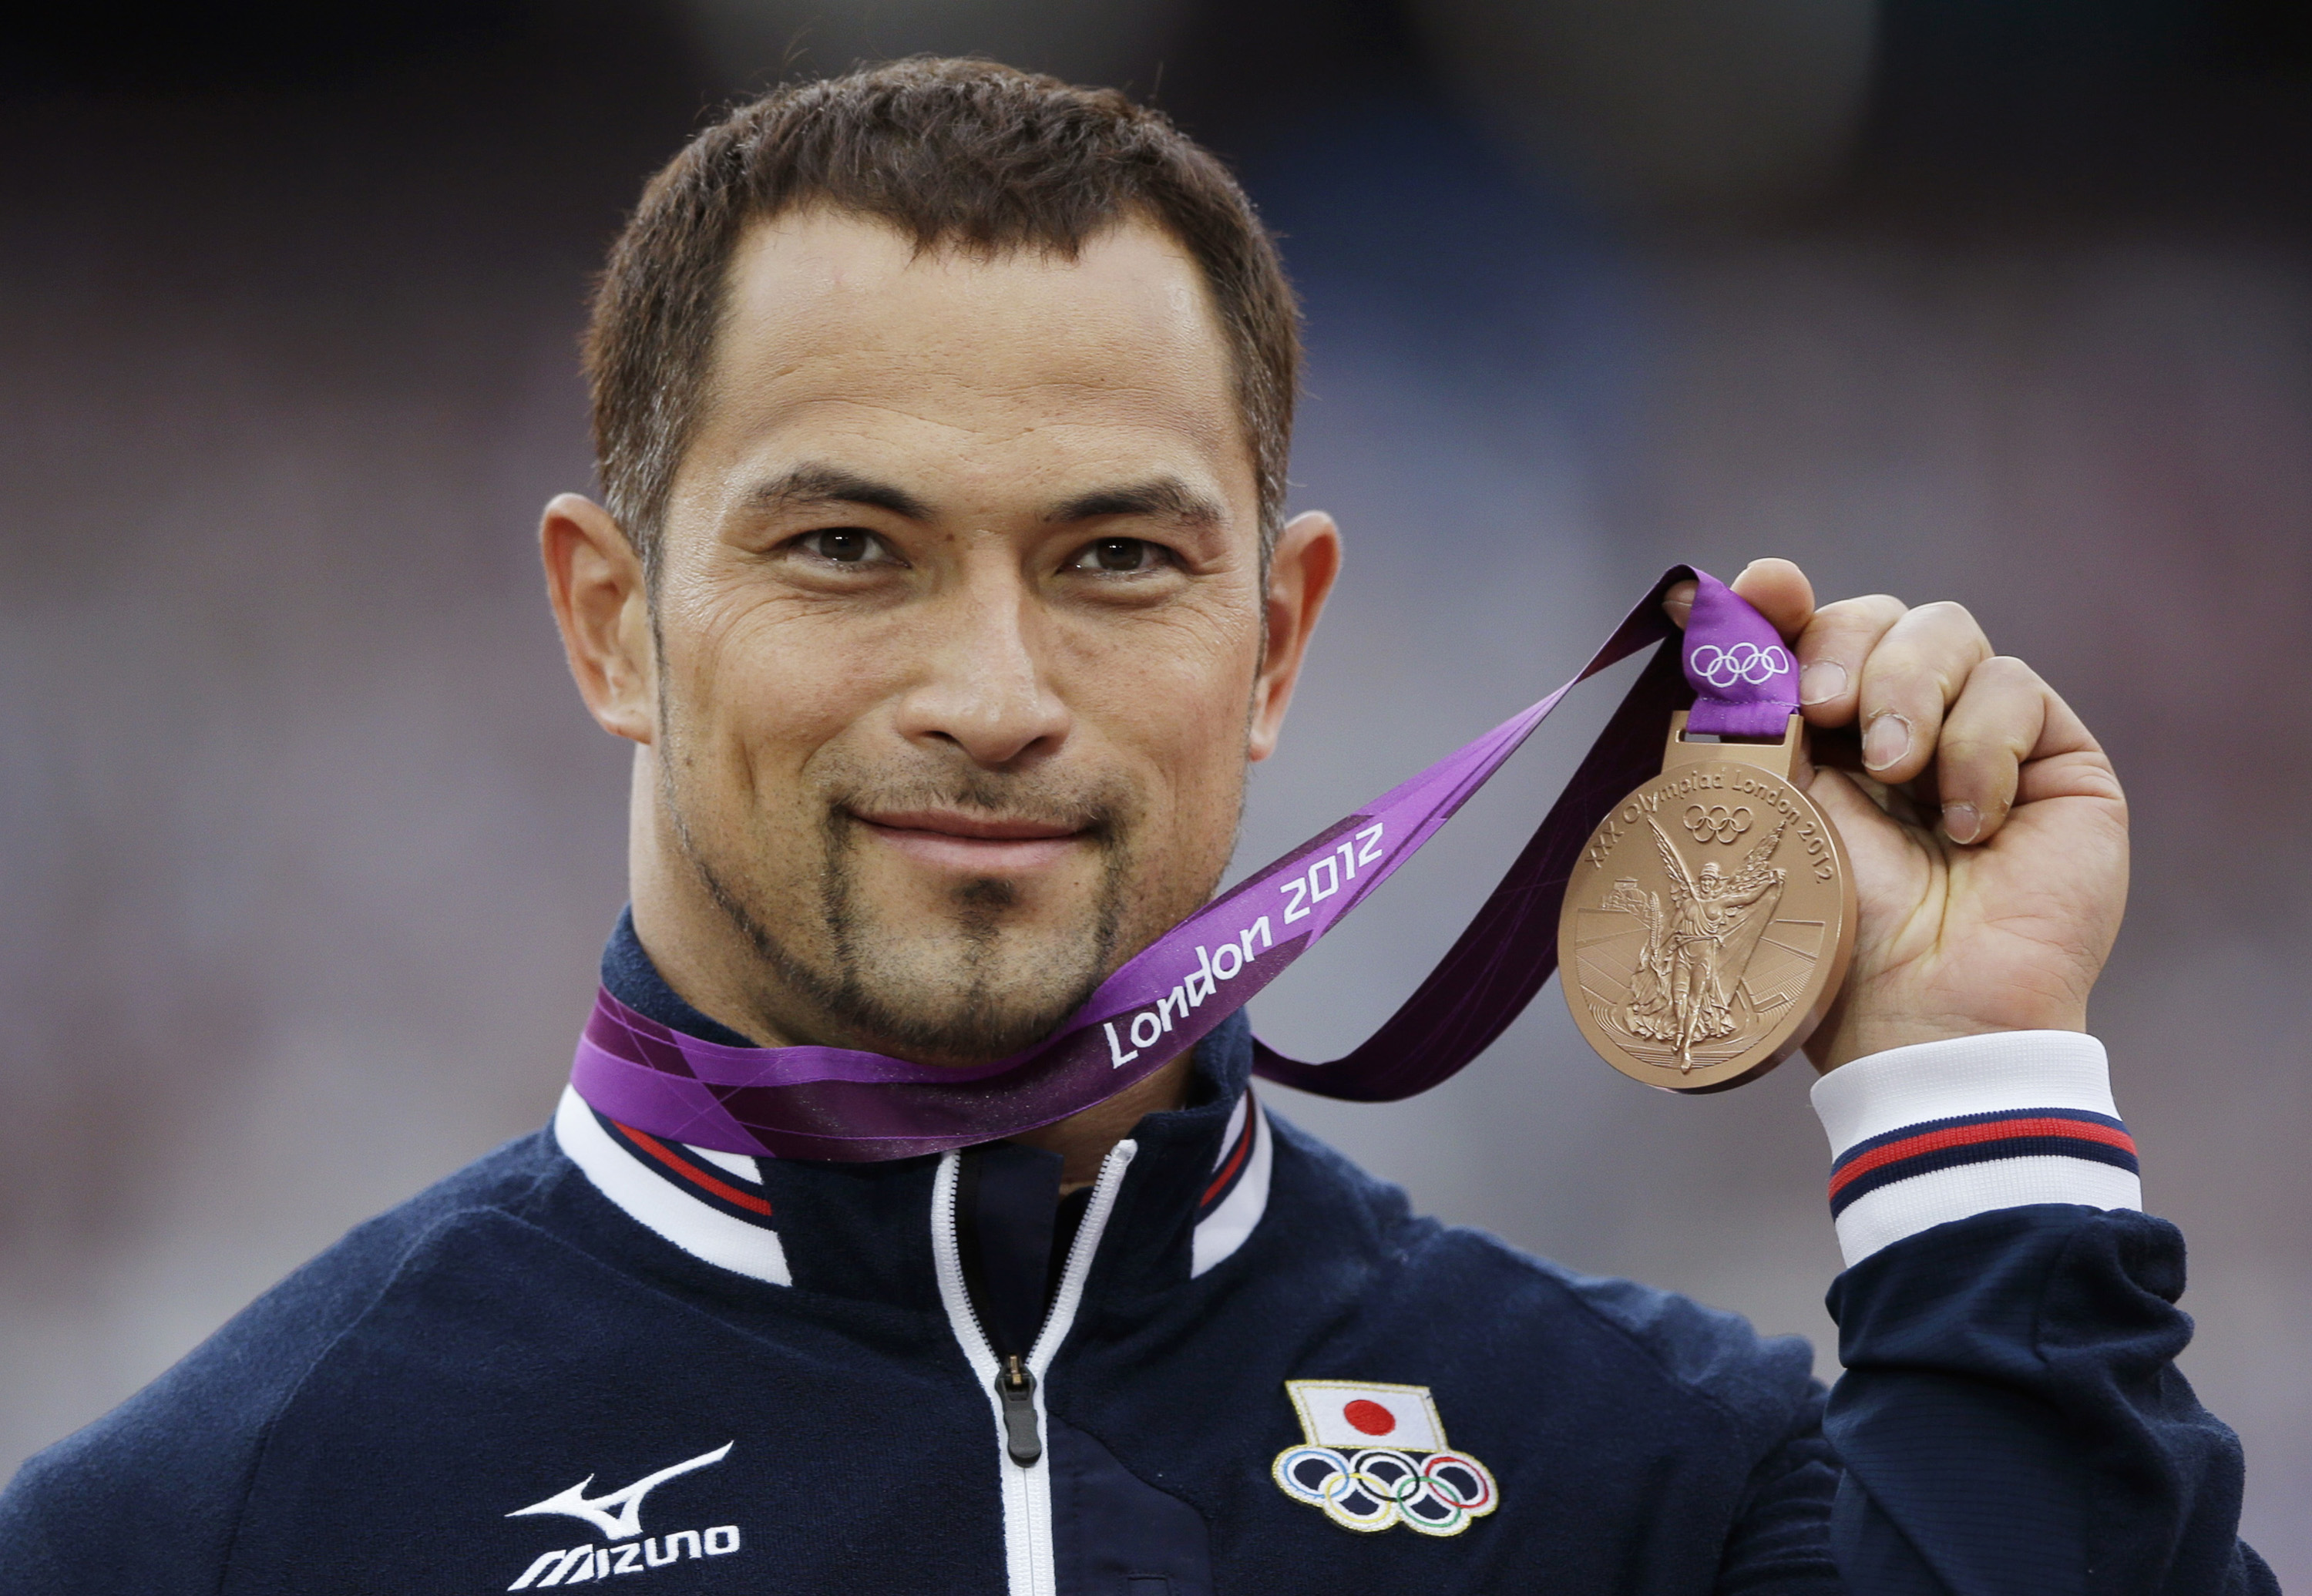 FILE - In this Monday, Aug. 6, 2012 file photo Japan's Koji Murofushi poses with his bronze medal for the men's hammer throw in the Olympic Stadium at the 2012 Summer Olympics in London. Olympic hammer-throw gold medalist Murofushi is among the Tokyo 2020 Olympics board members. (AP Photo/Matt Slocum, File)